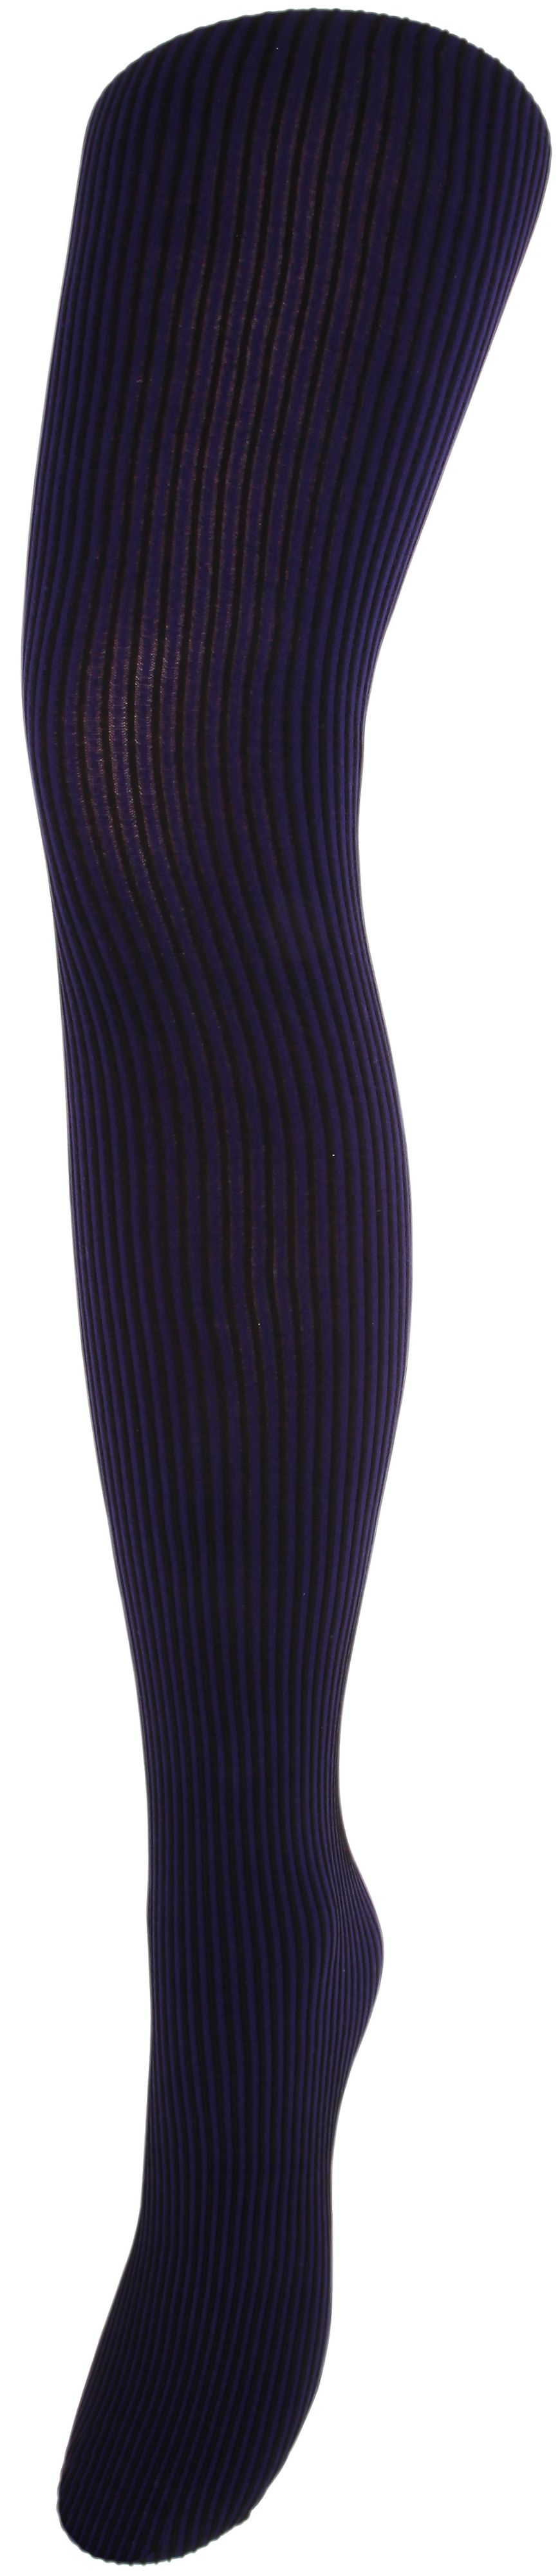 Stripe opaque tights